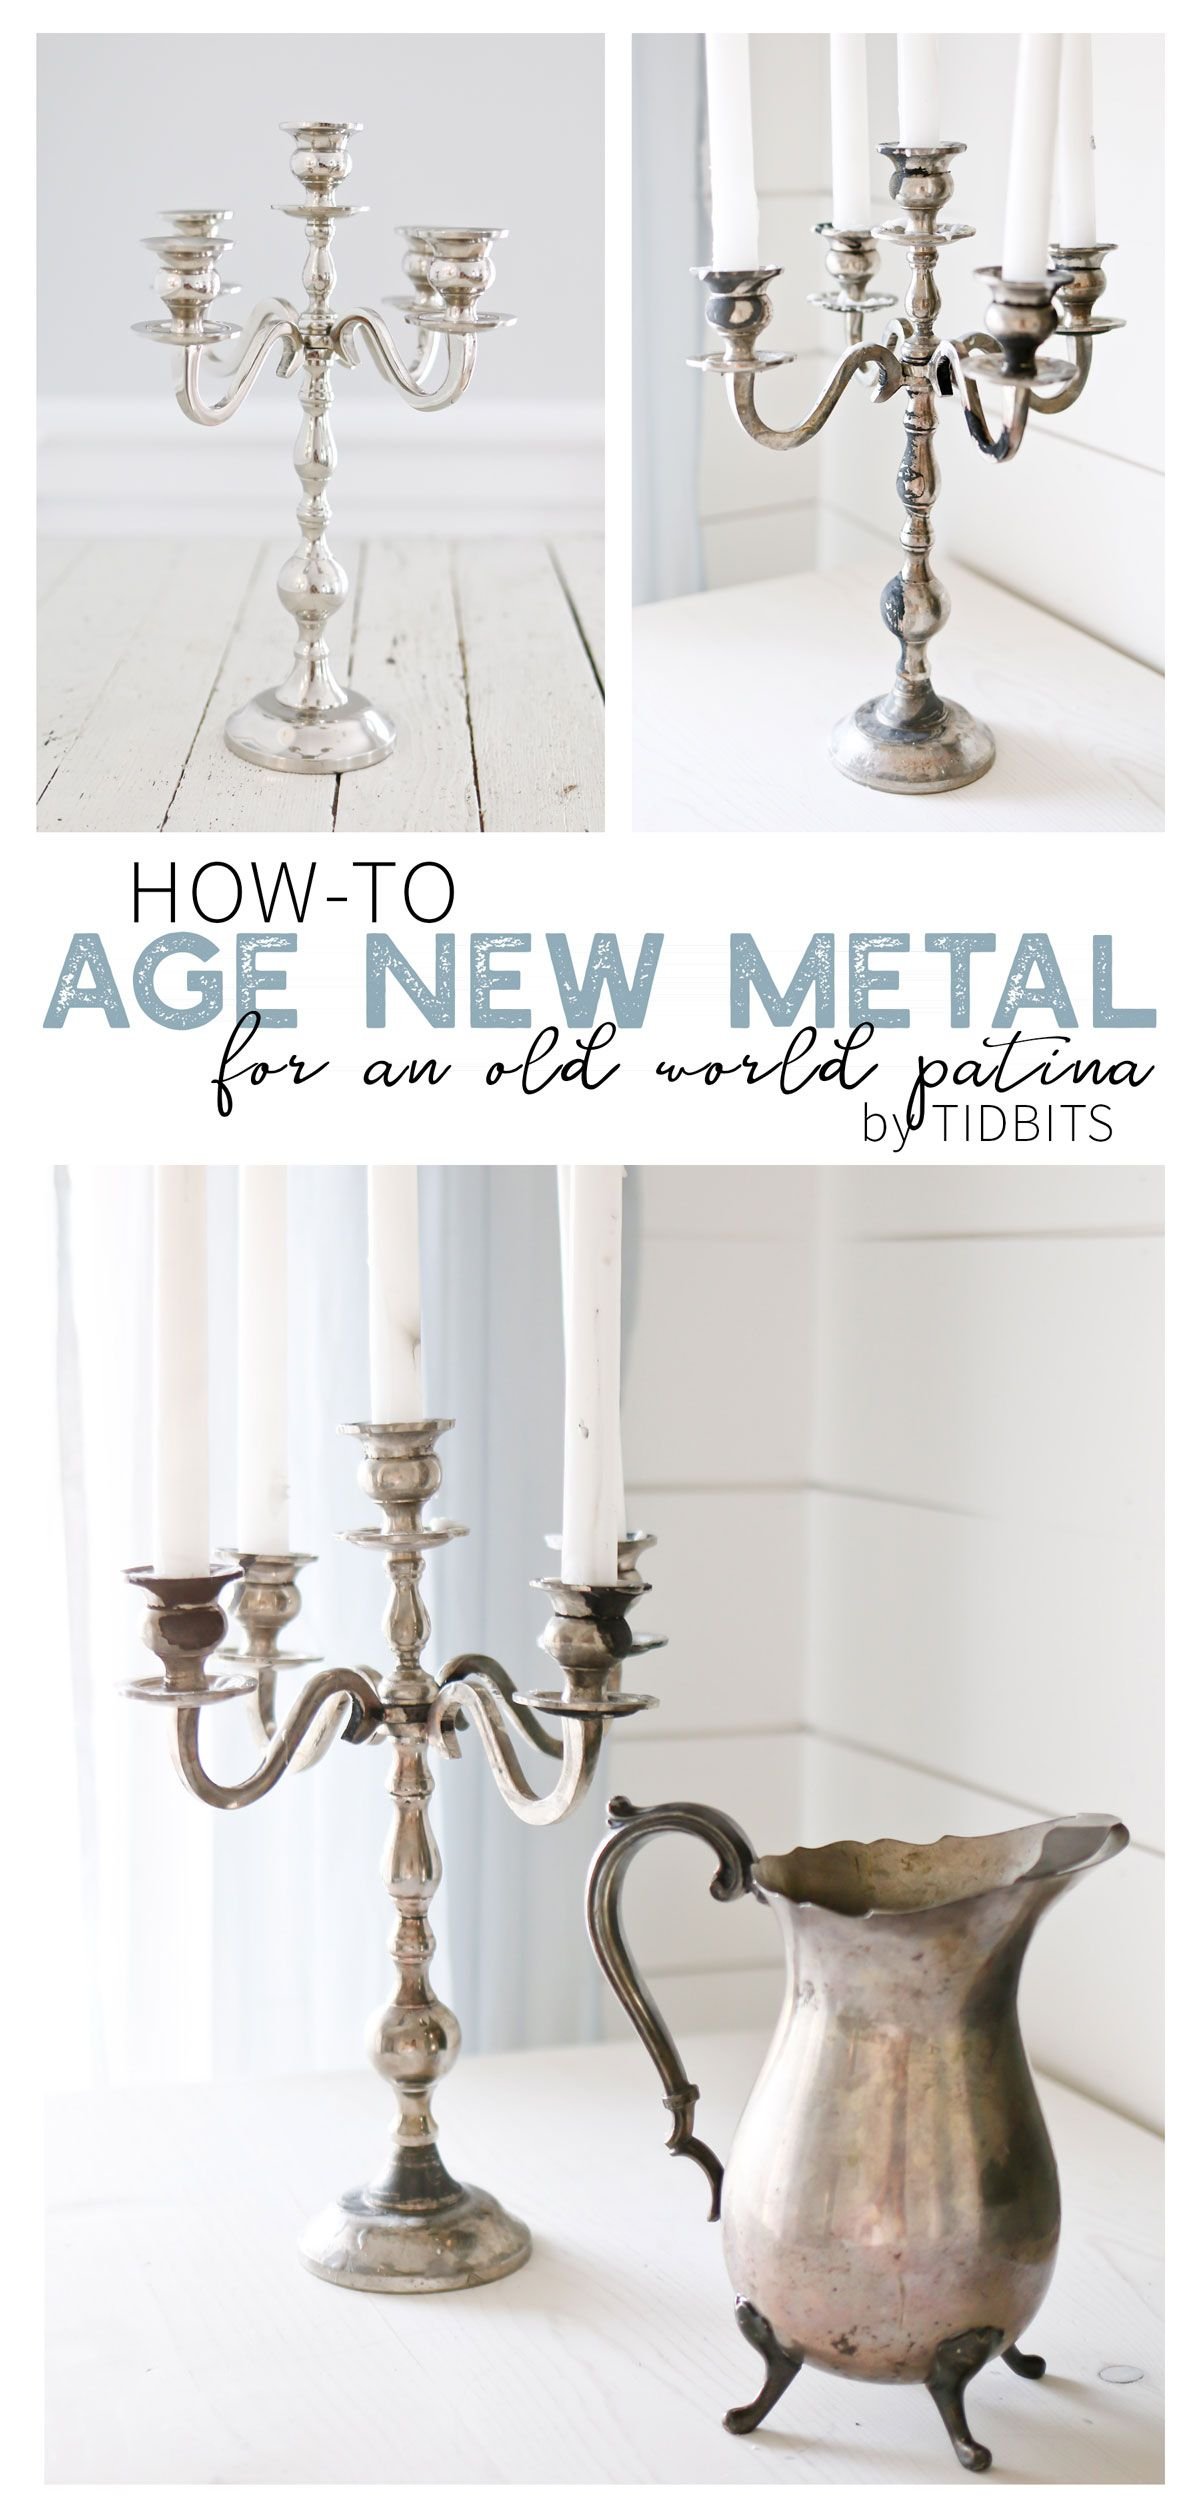 How to age new metal for an old world patina. See how we made a new shiny candelabra look vintage with this simple household ingredient. #camitidbits #agemetal #candelabra #vintage #vintagecandelabra #antiquecandelabra #antiquemetal #vintagemetal #vinegar #frenchvintage #frenchvintagedecor #bookreview #agemetalwithvinegar #patina #oldworldpatina